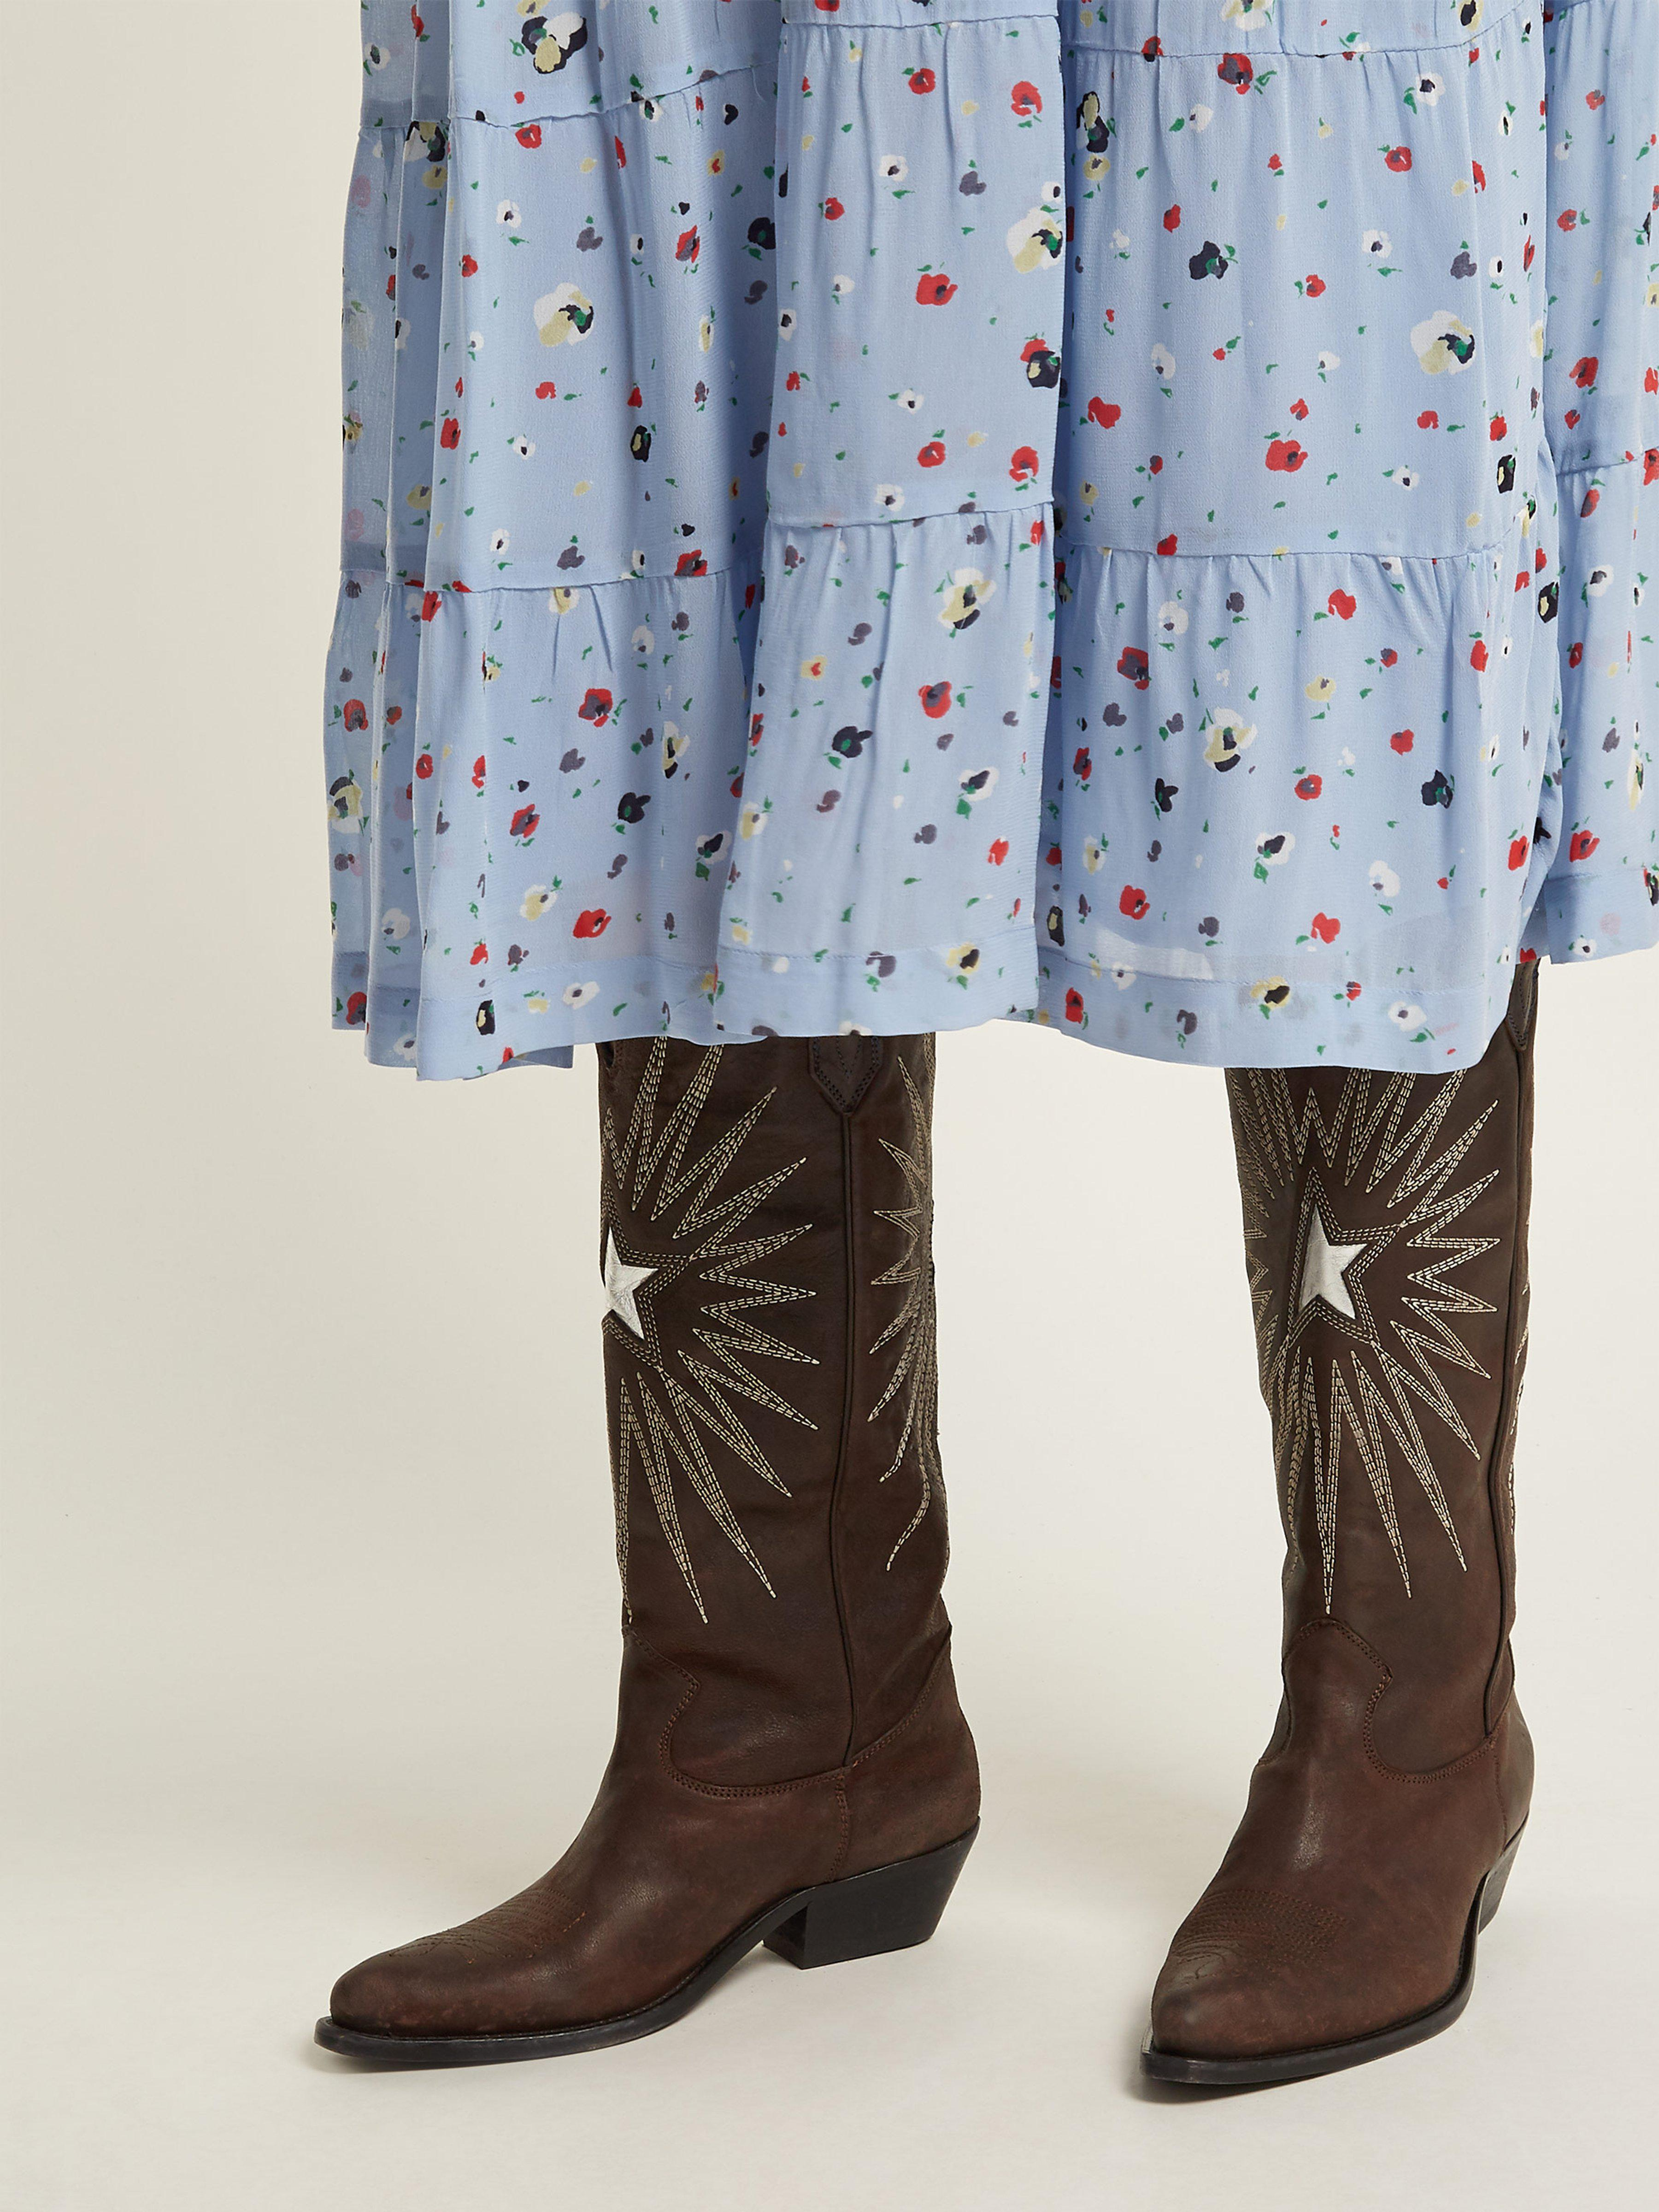 dc88719f49f5 Golden Goose Deluxe Brand Wish Star Embroidered Leather Boots in ...